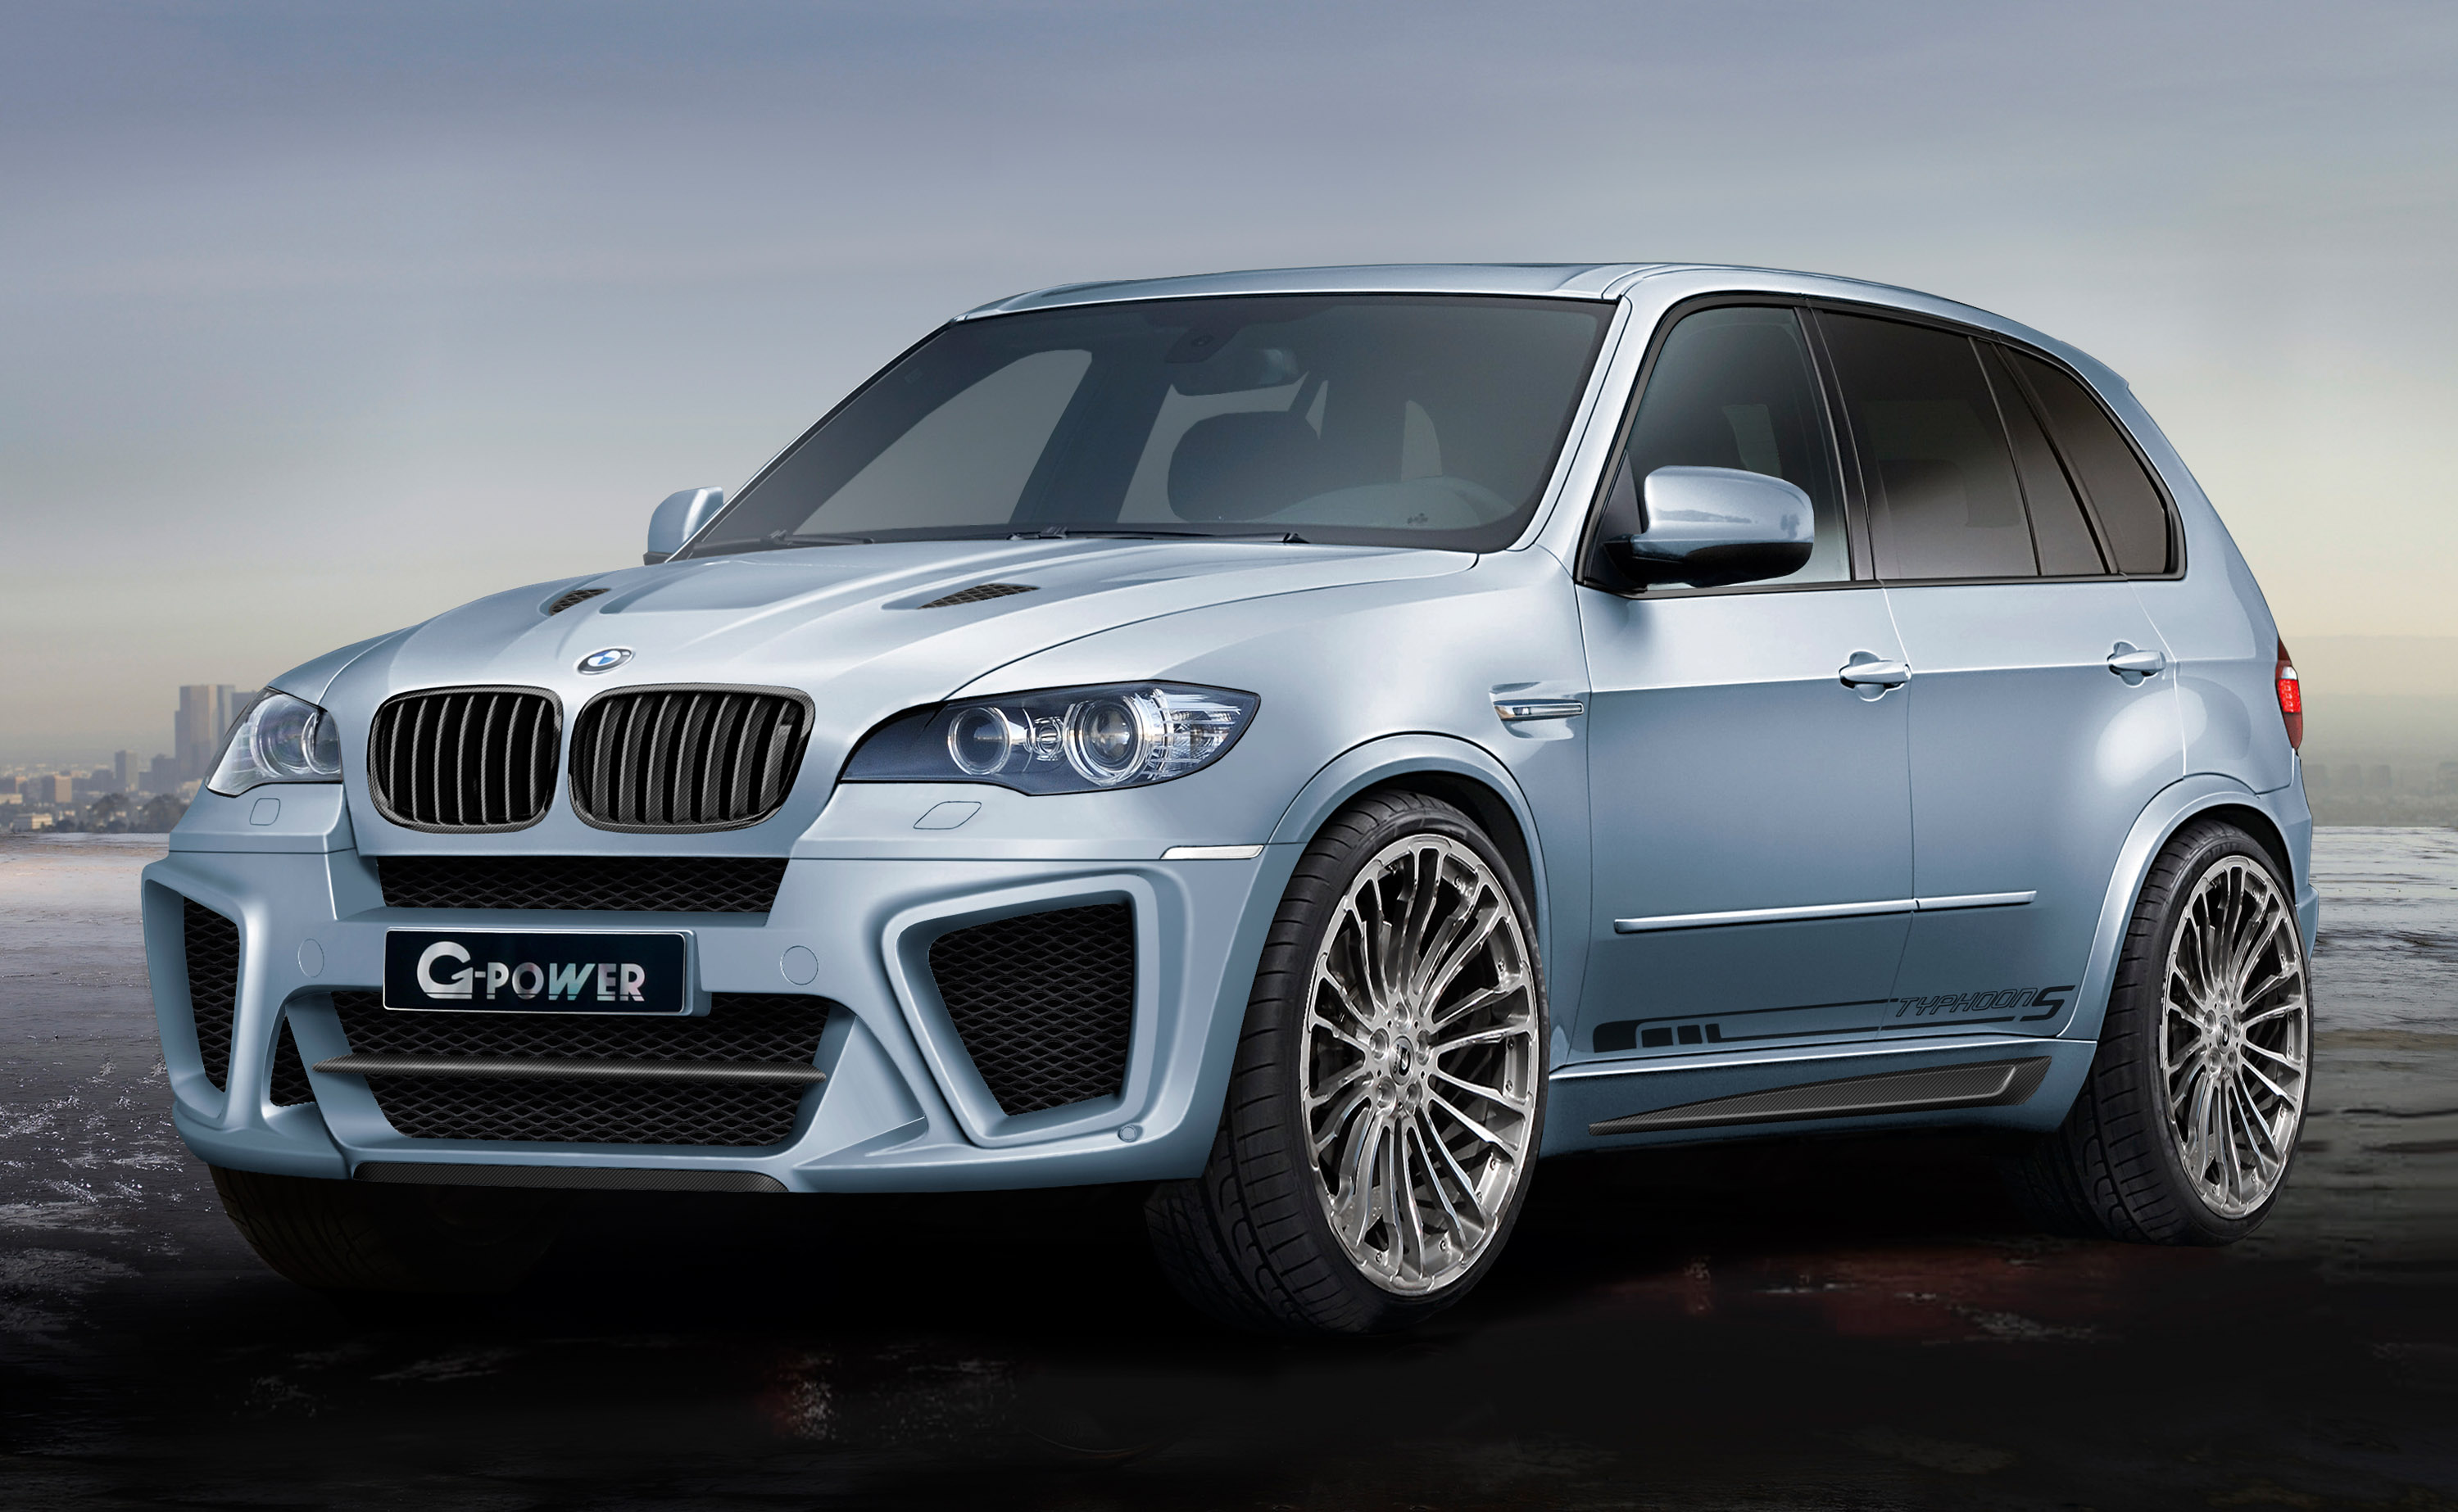 G-POWER retrofits the BMW X5 M and X6 M